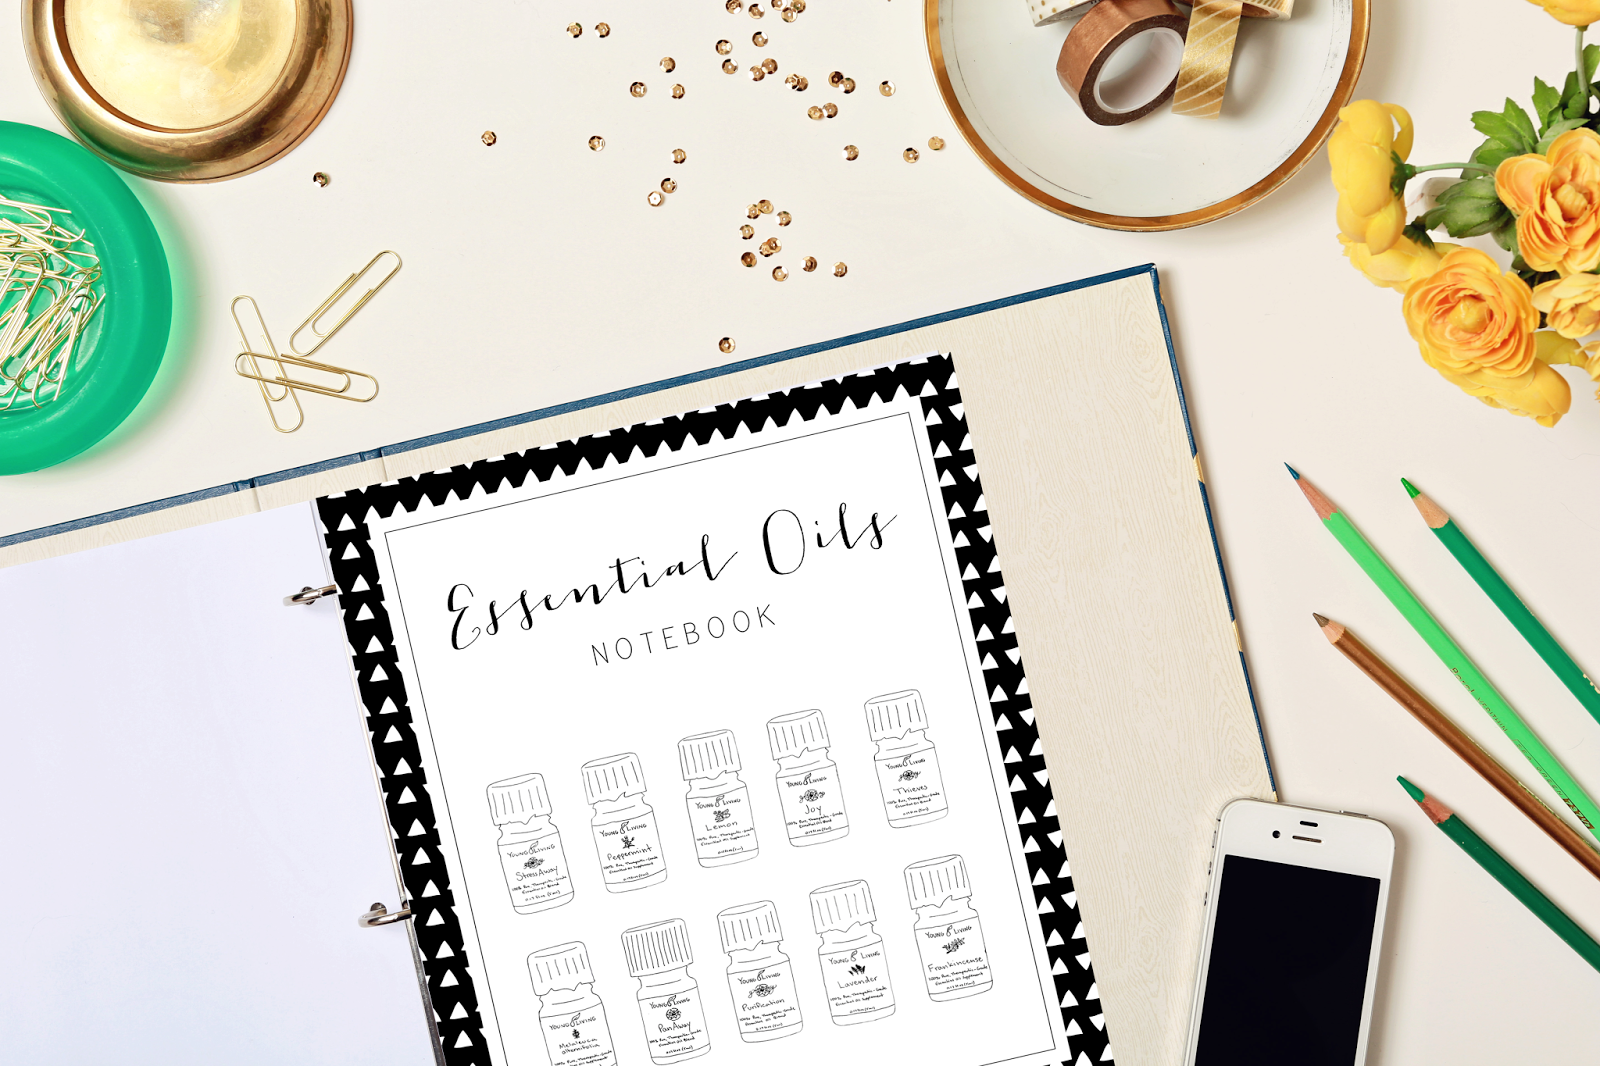 mrs prince and co essential oils printable notebook